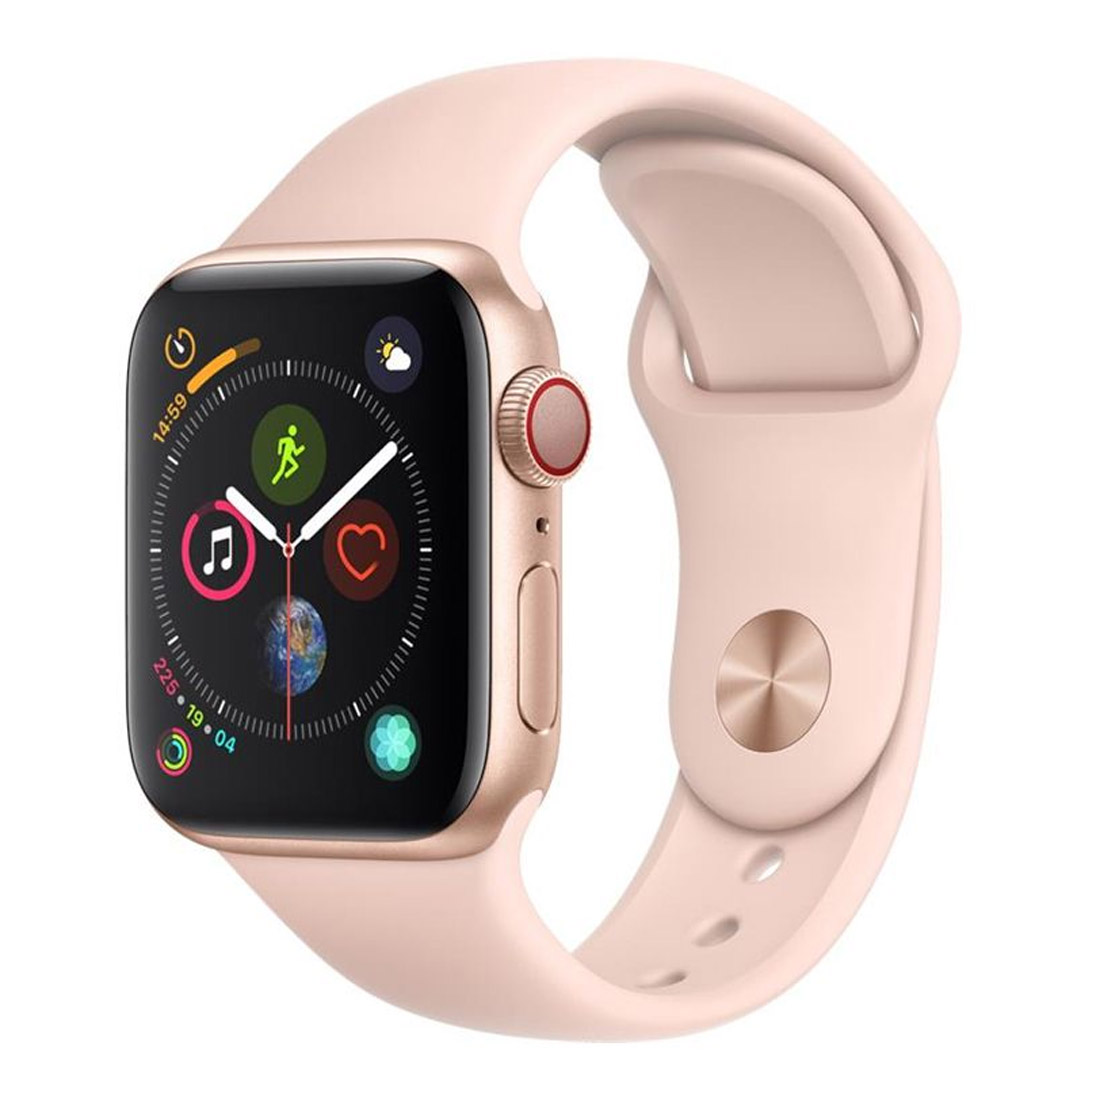 [Good Condition - Pre Owned] Apple Watch 44mm S4 (Cellular) - Gold Al Case w/ Pink Sand Sport Band